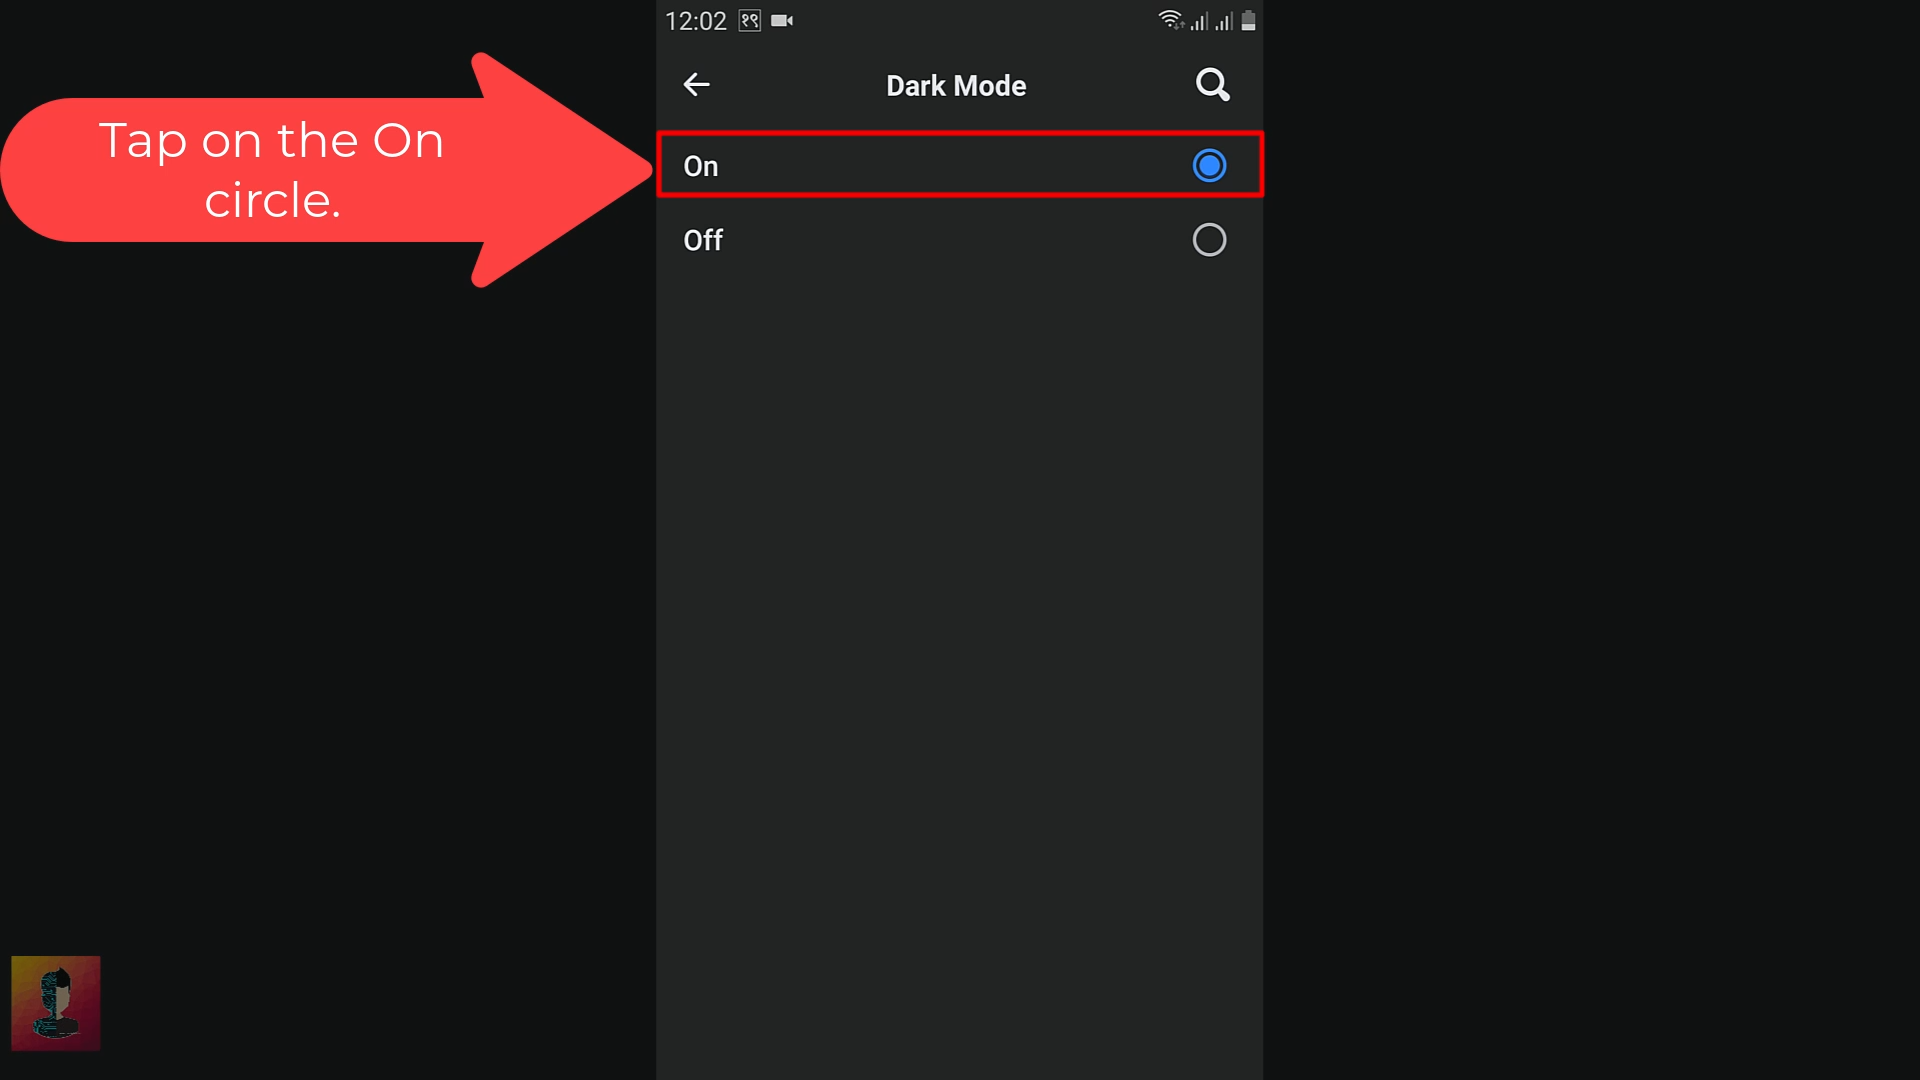 select on button